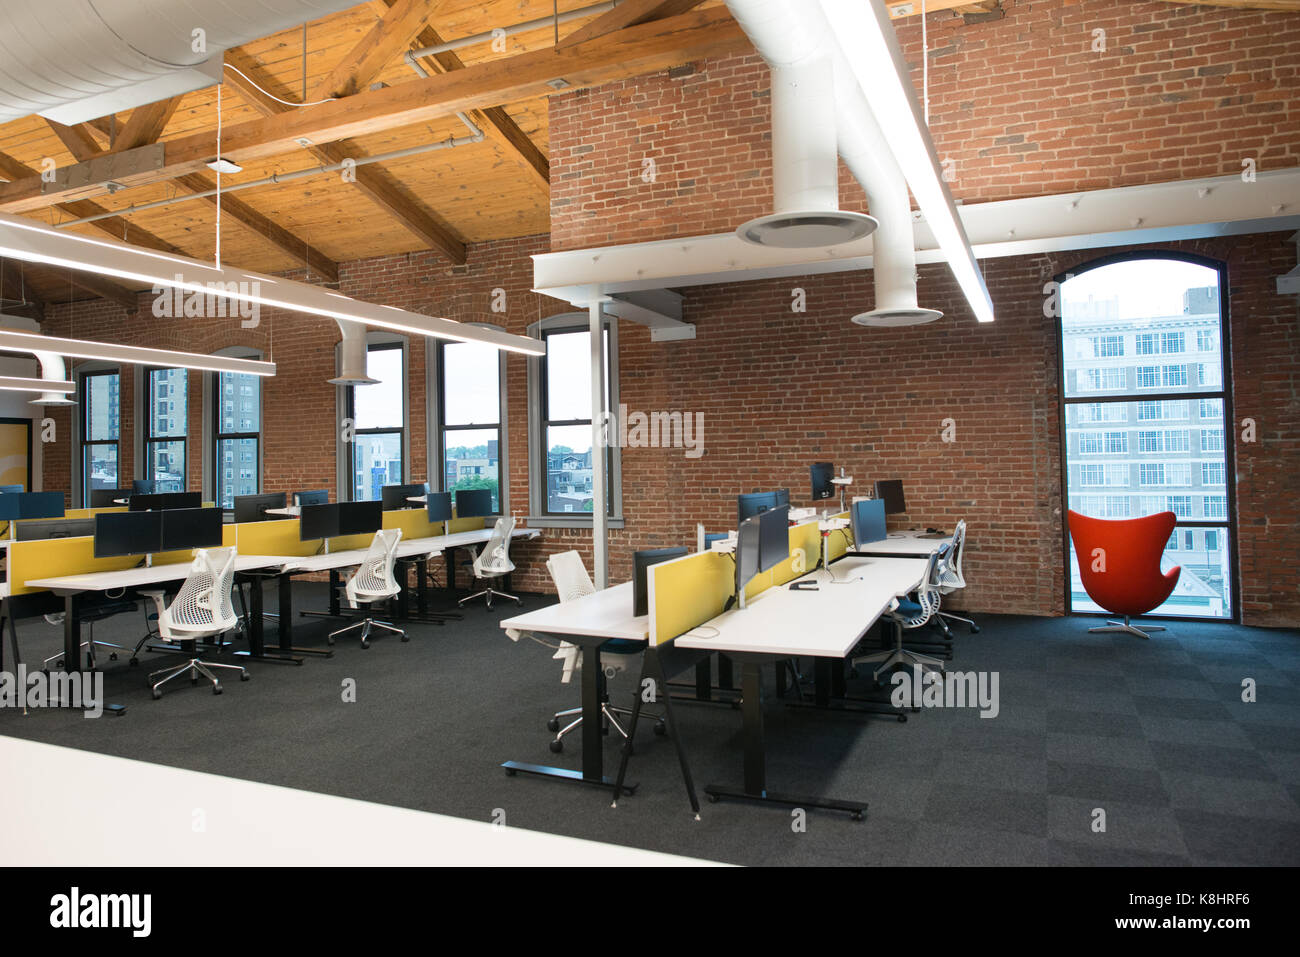 Bon Trendy Modern Open Concept Loft Office Space With Big Windows, Natural Light  And A Layout To Encourage Collaboration, Creativity And Innovation